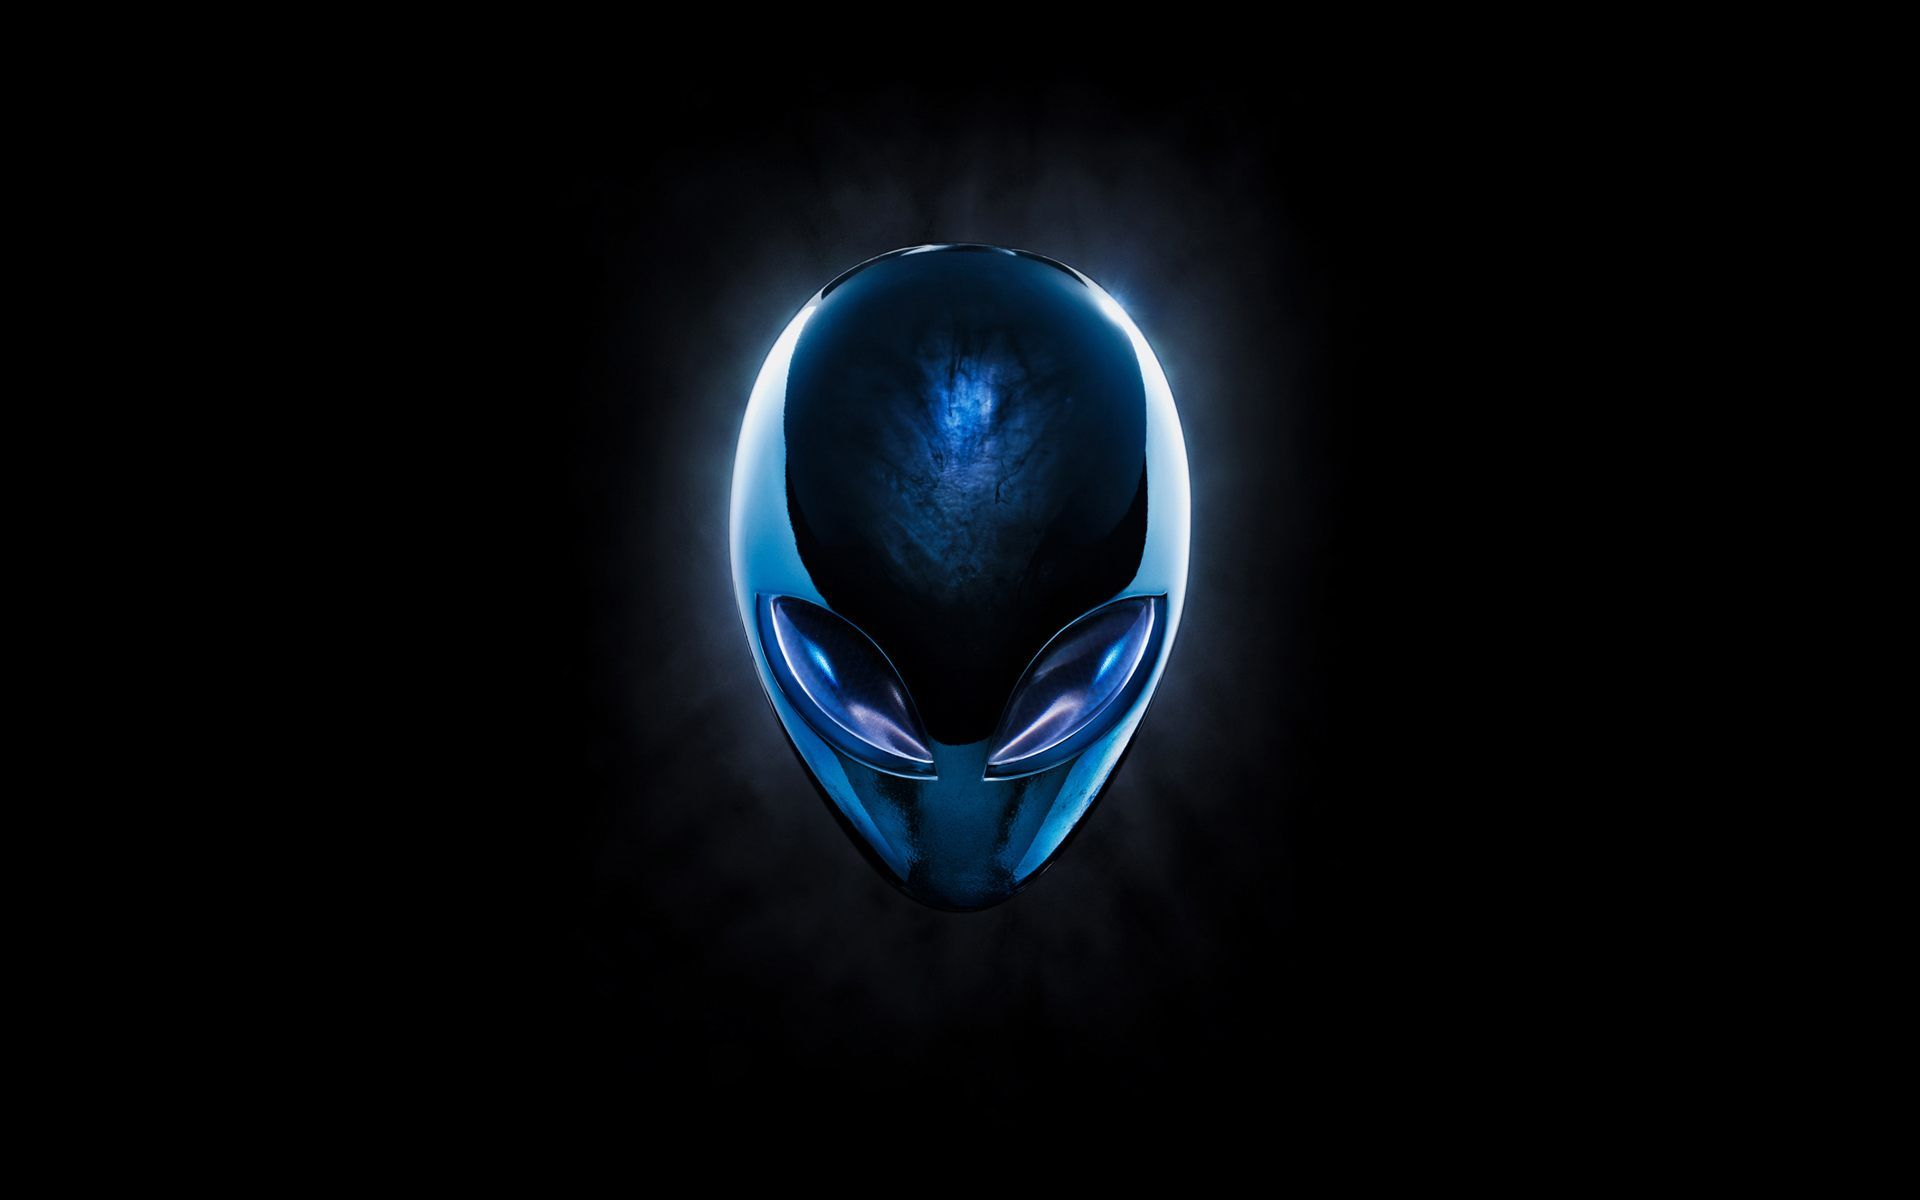 Alienware Logo Wallpaper HD For Desktop Free Download